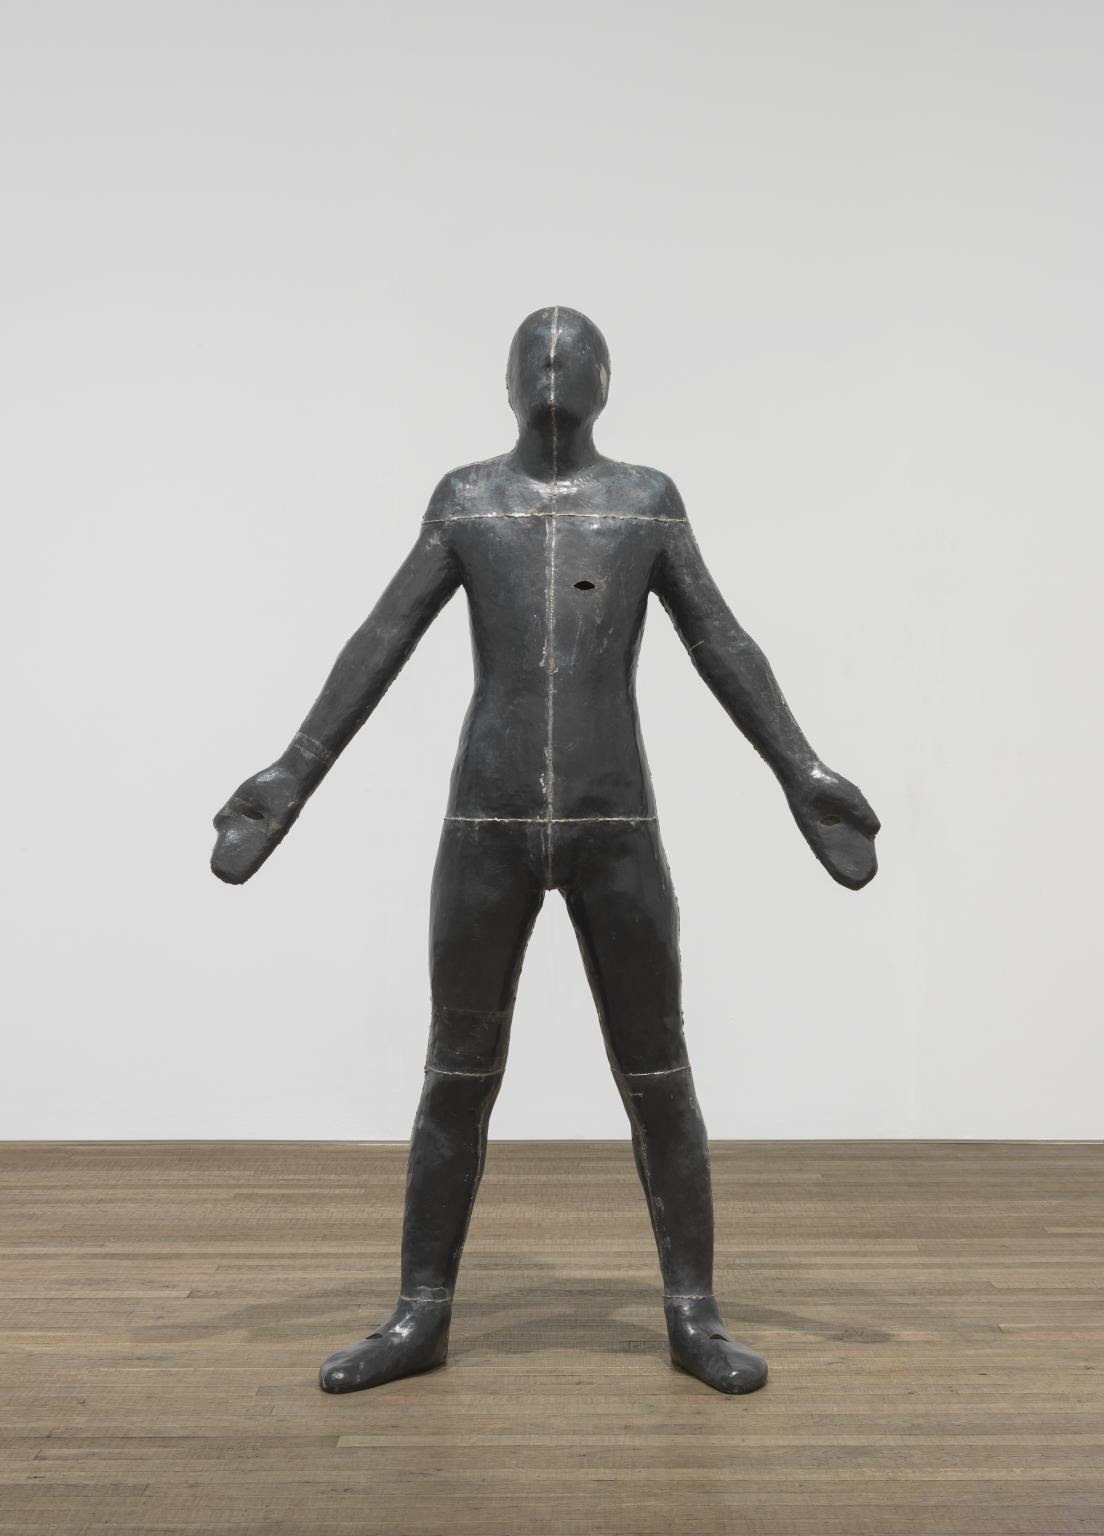 Tate Modern Part 1: Highlights from the collection